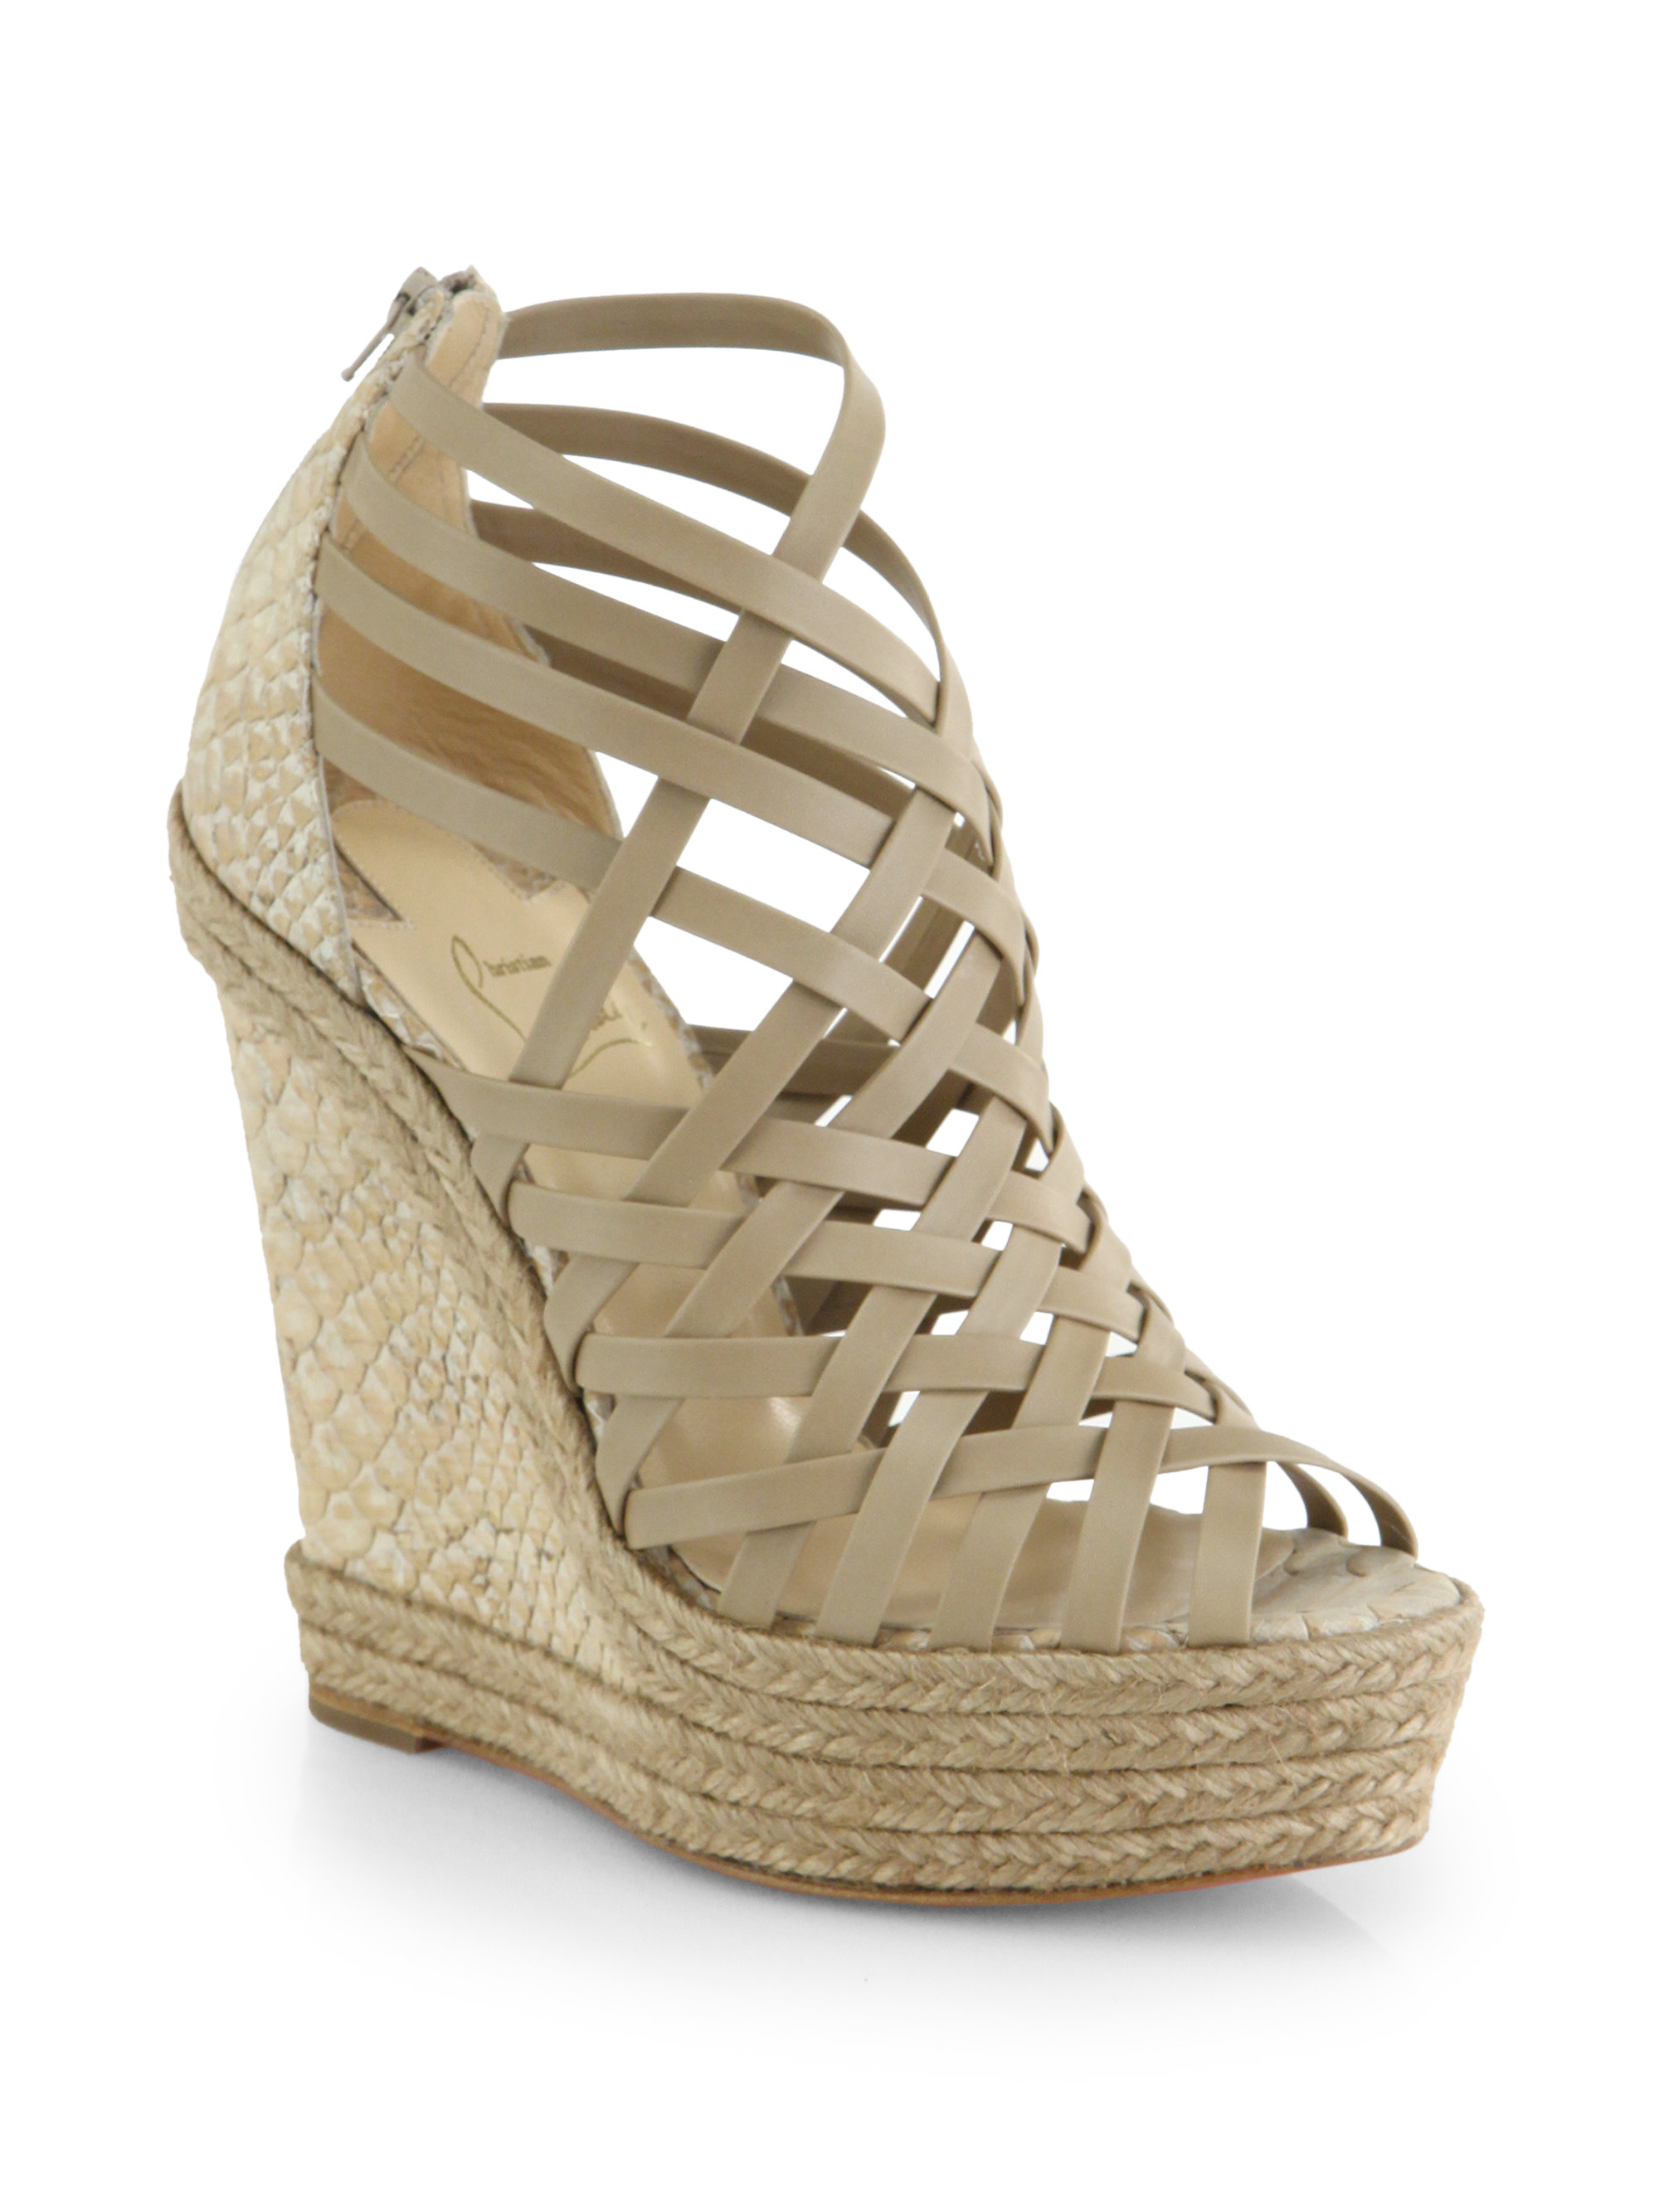 christian louboutin cork wedge sandals | The Filipino Language ...